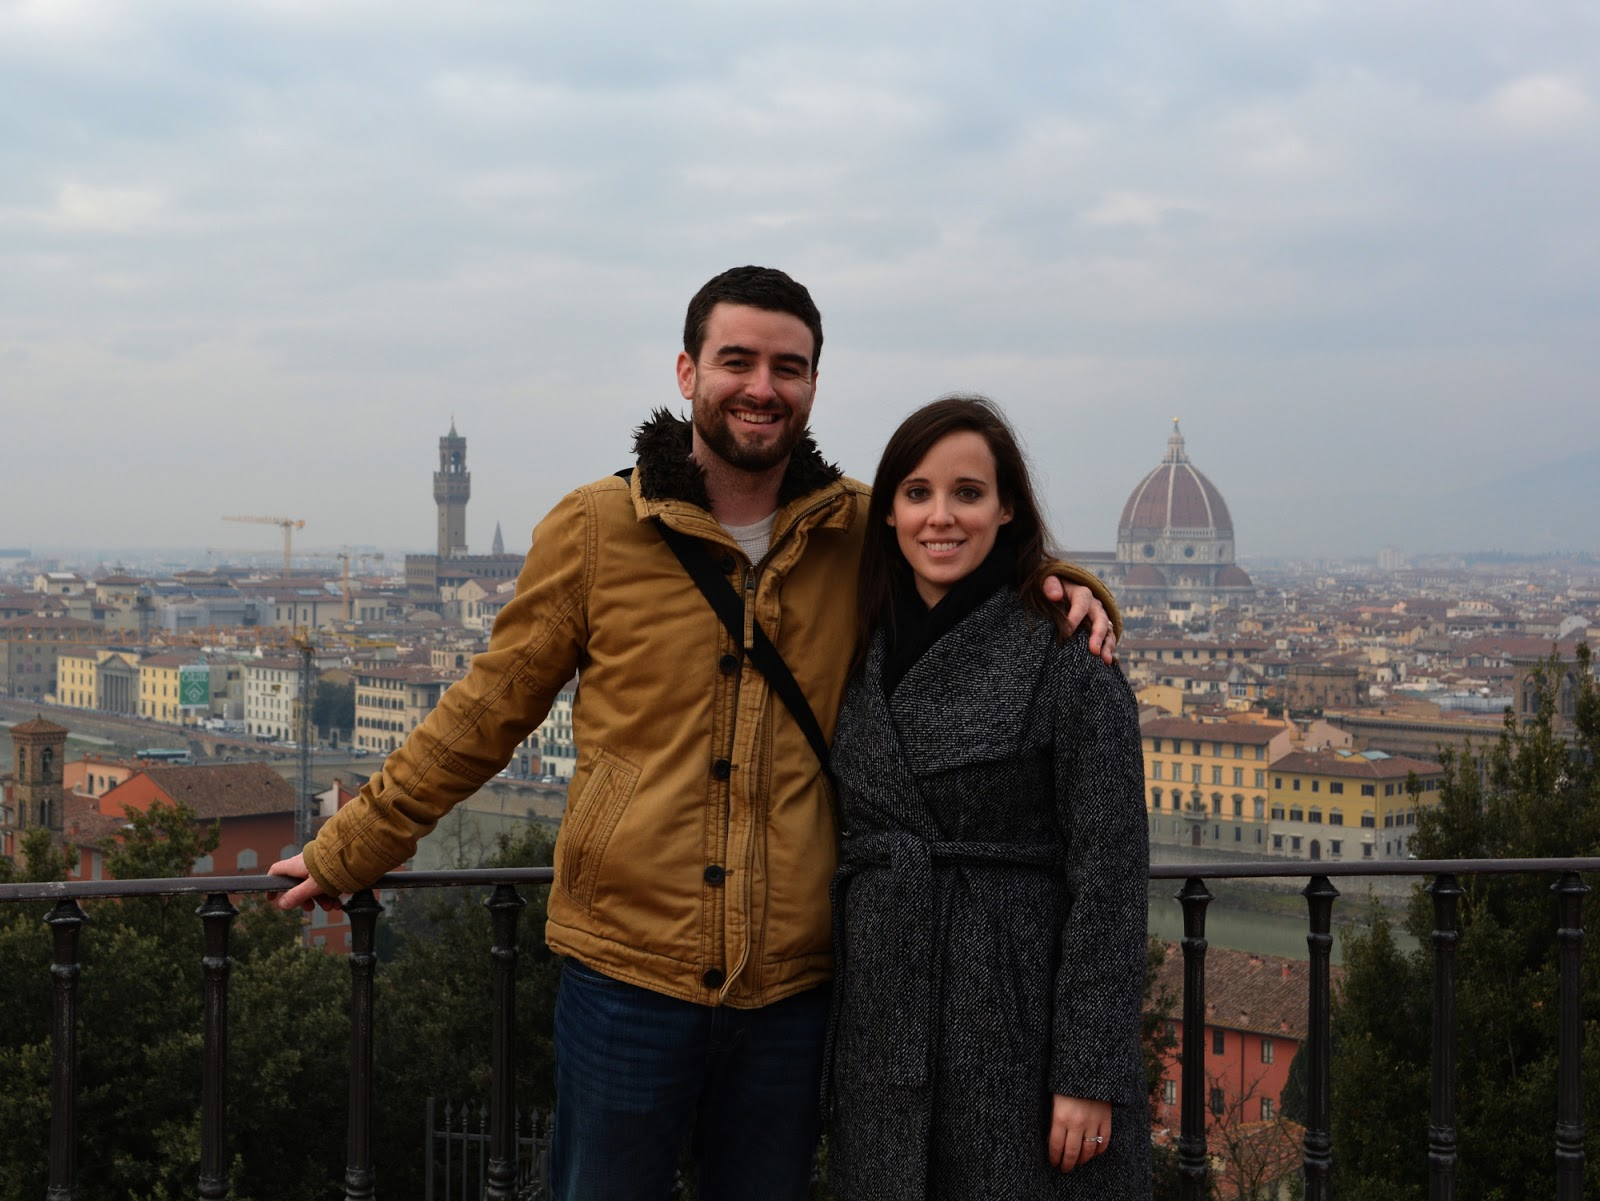 cozy birdhouse | overlooking florence from piazzale michelangelo